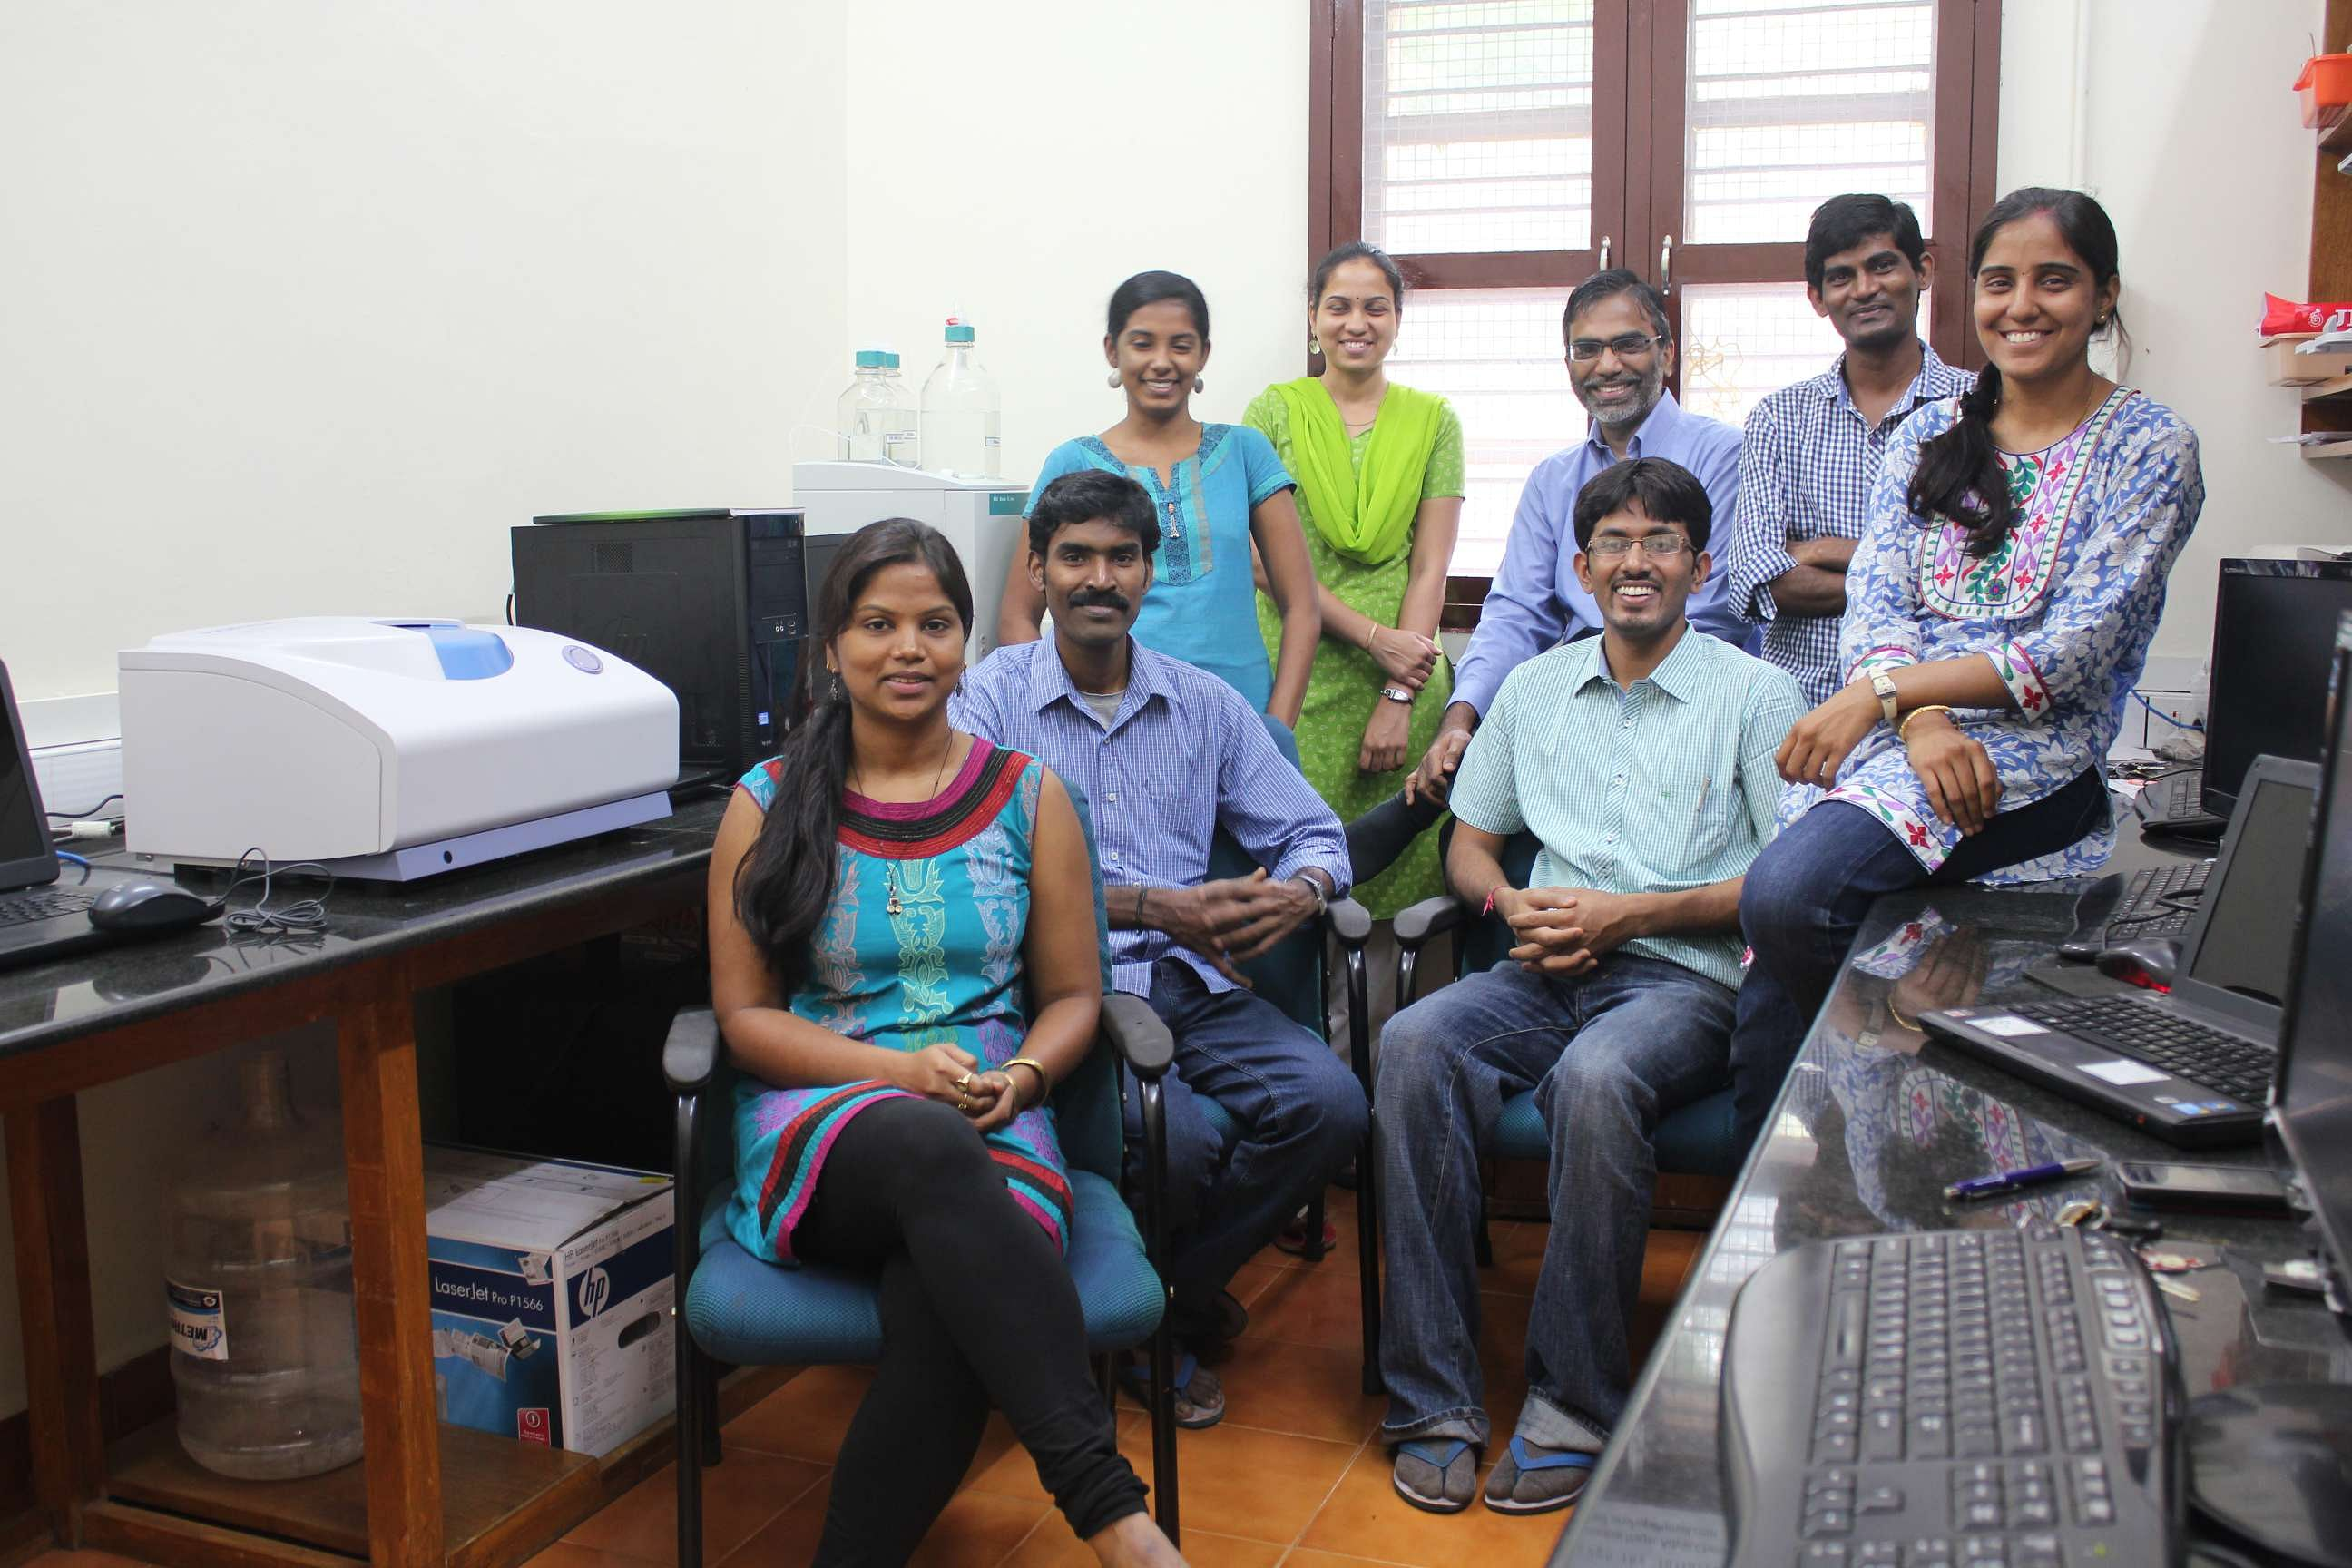 Team behind the water purifier